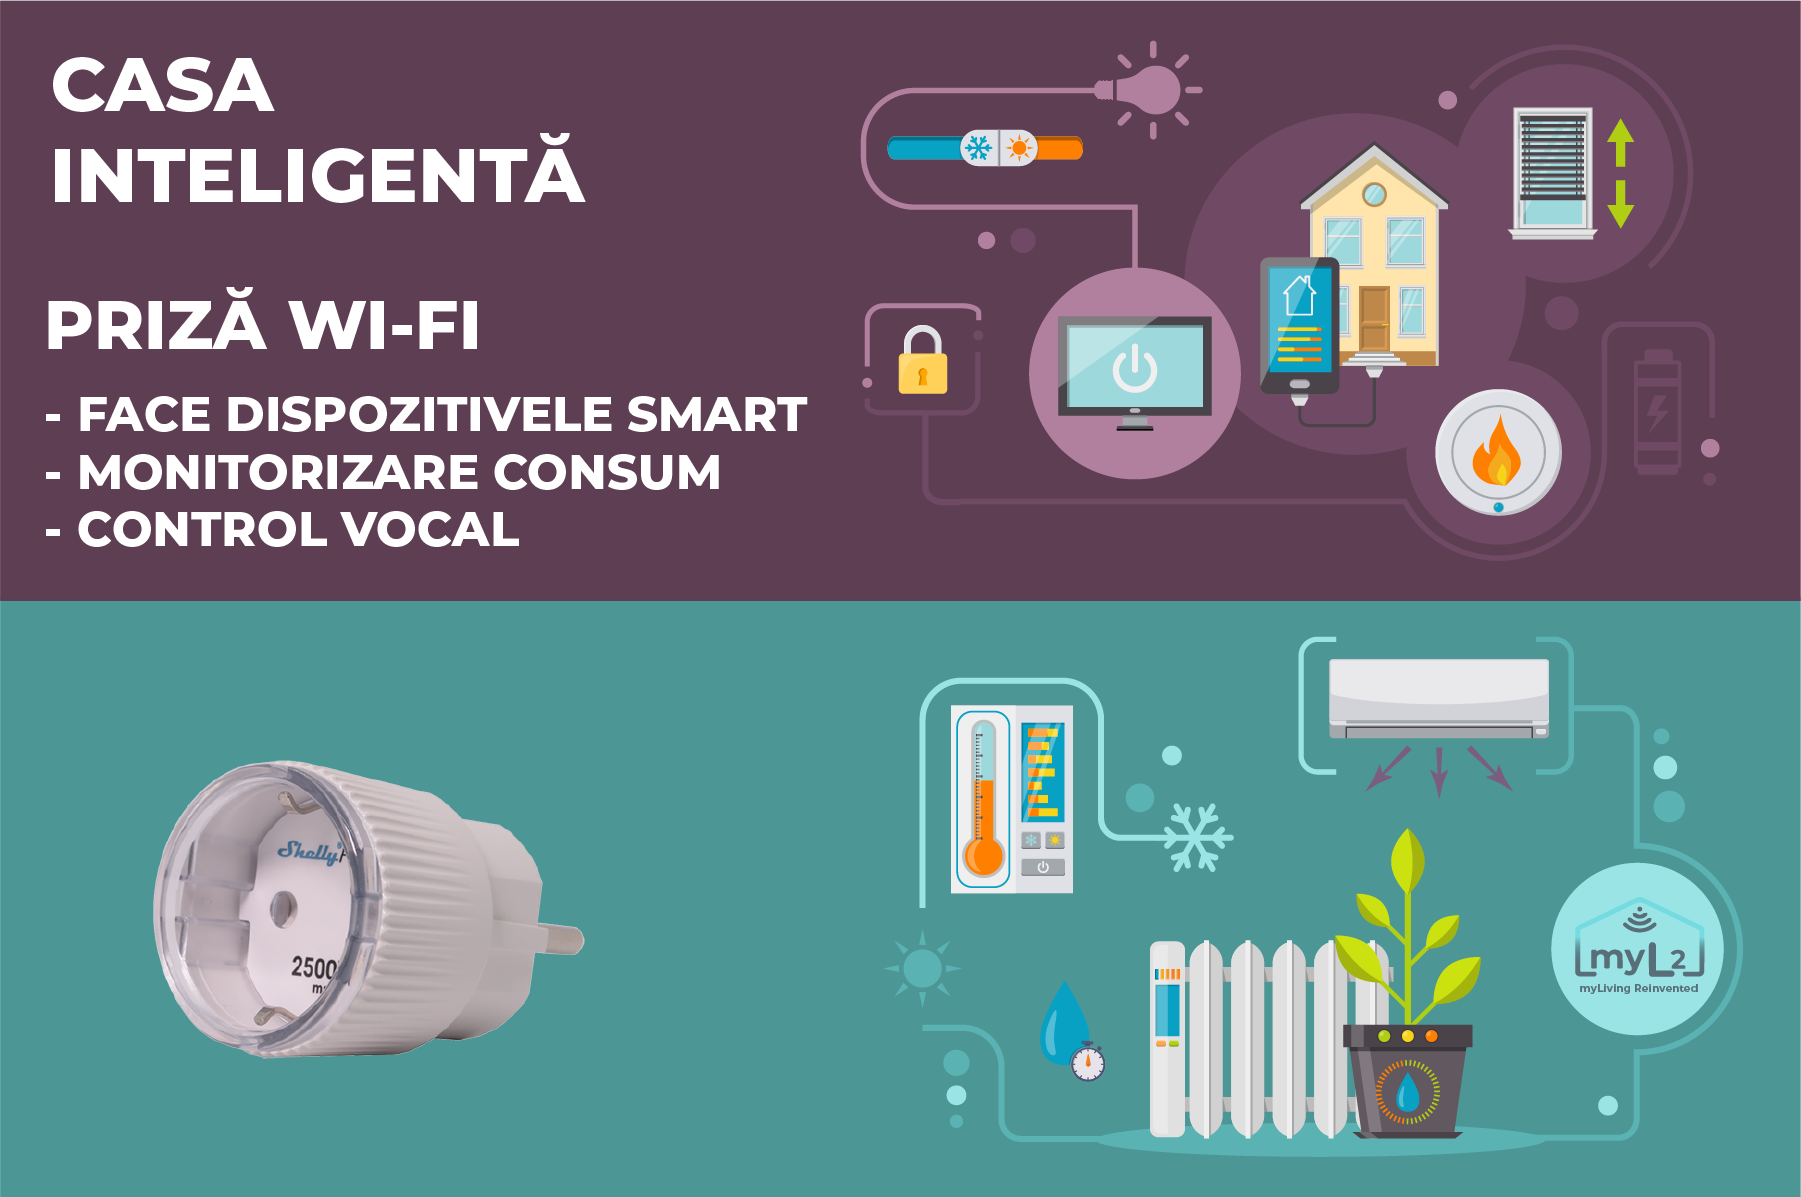 priza inteligenta shelly plug s wifi